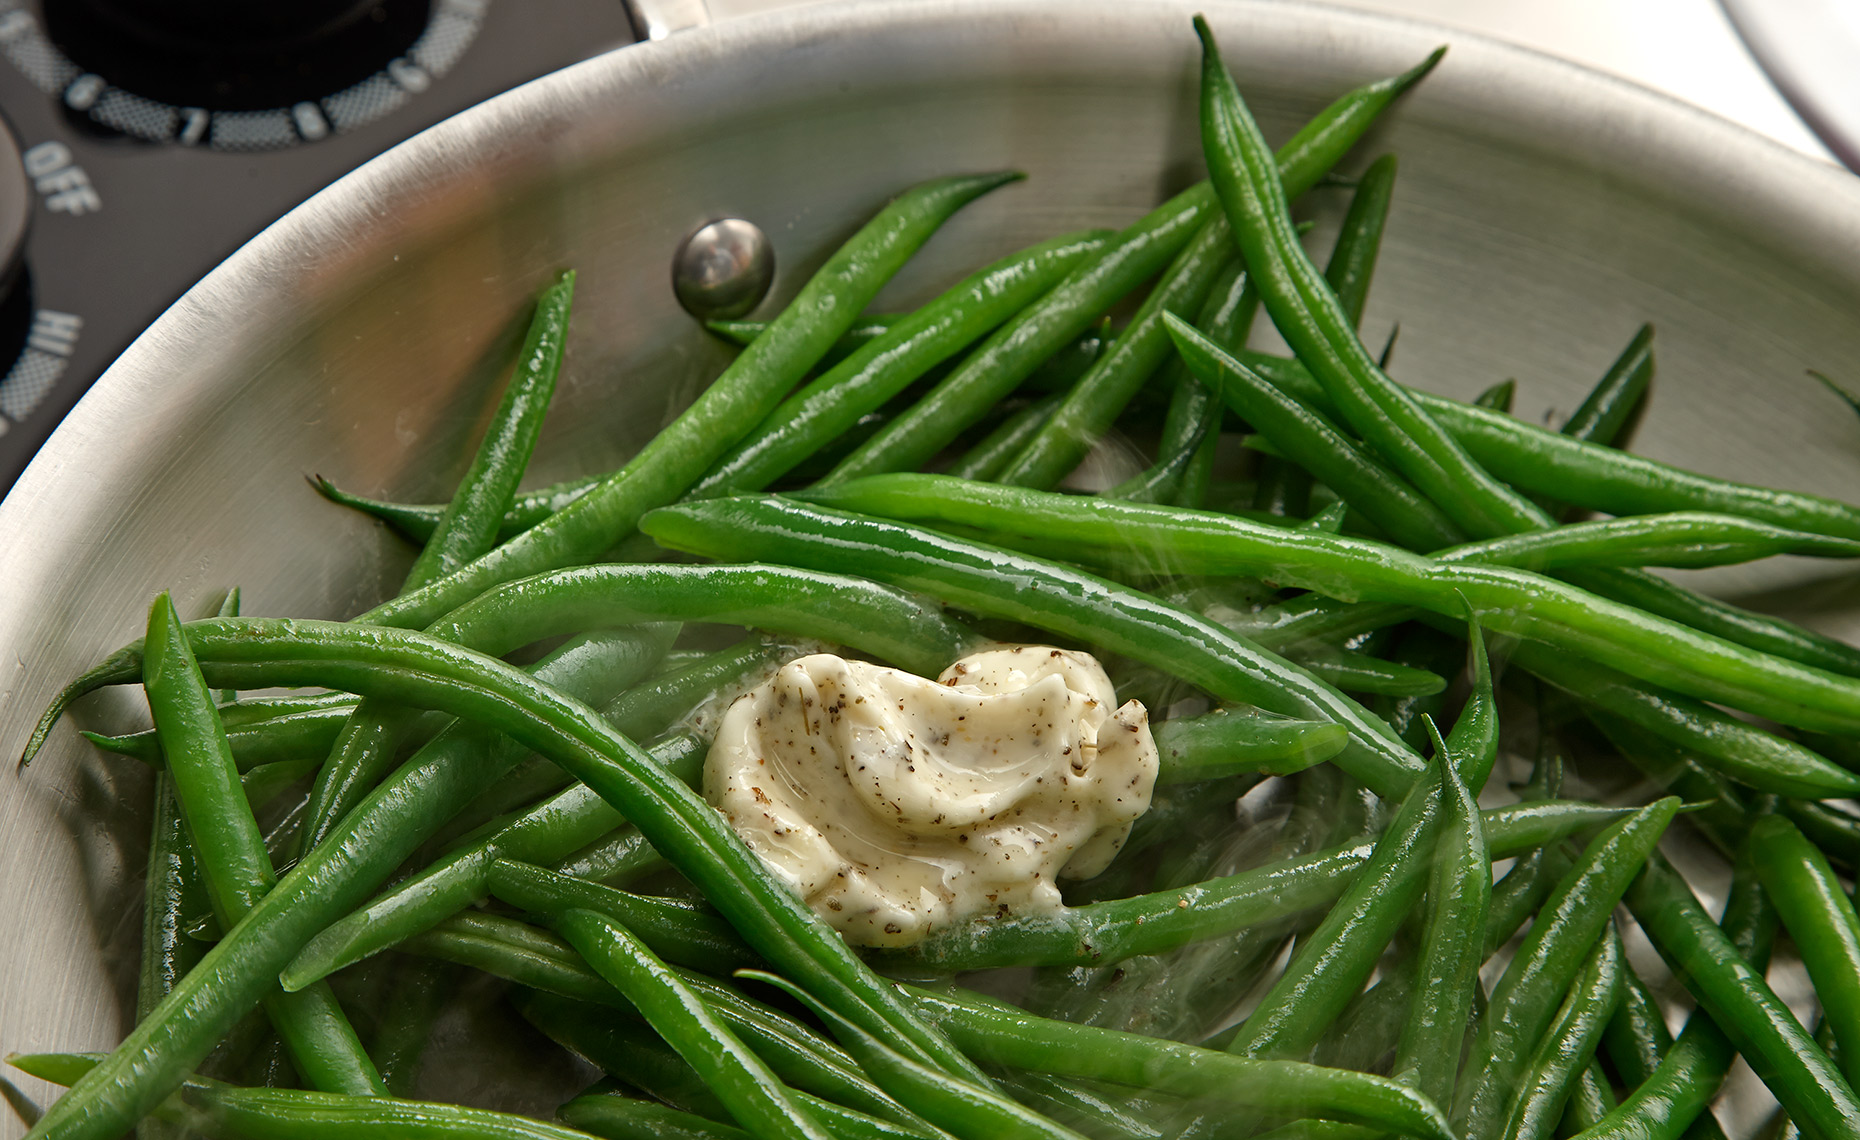 Food Photographer, Vegetable photography, Fruit photography | Pohuski Studios,  Sautéed Green Beans